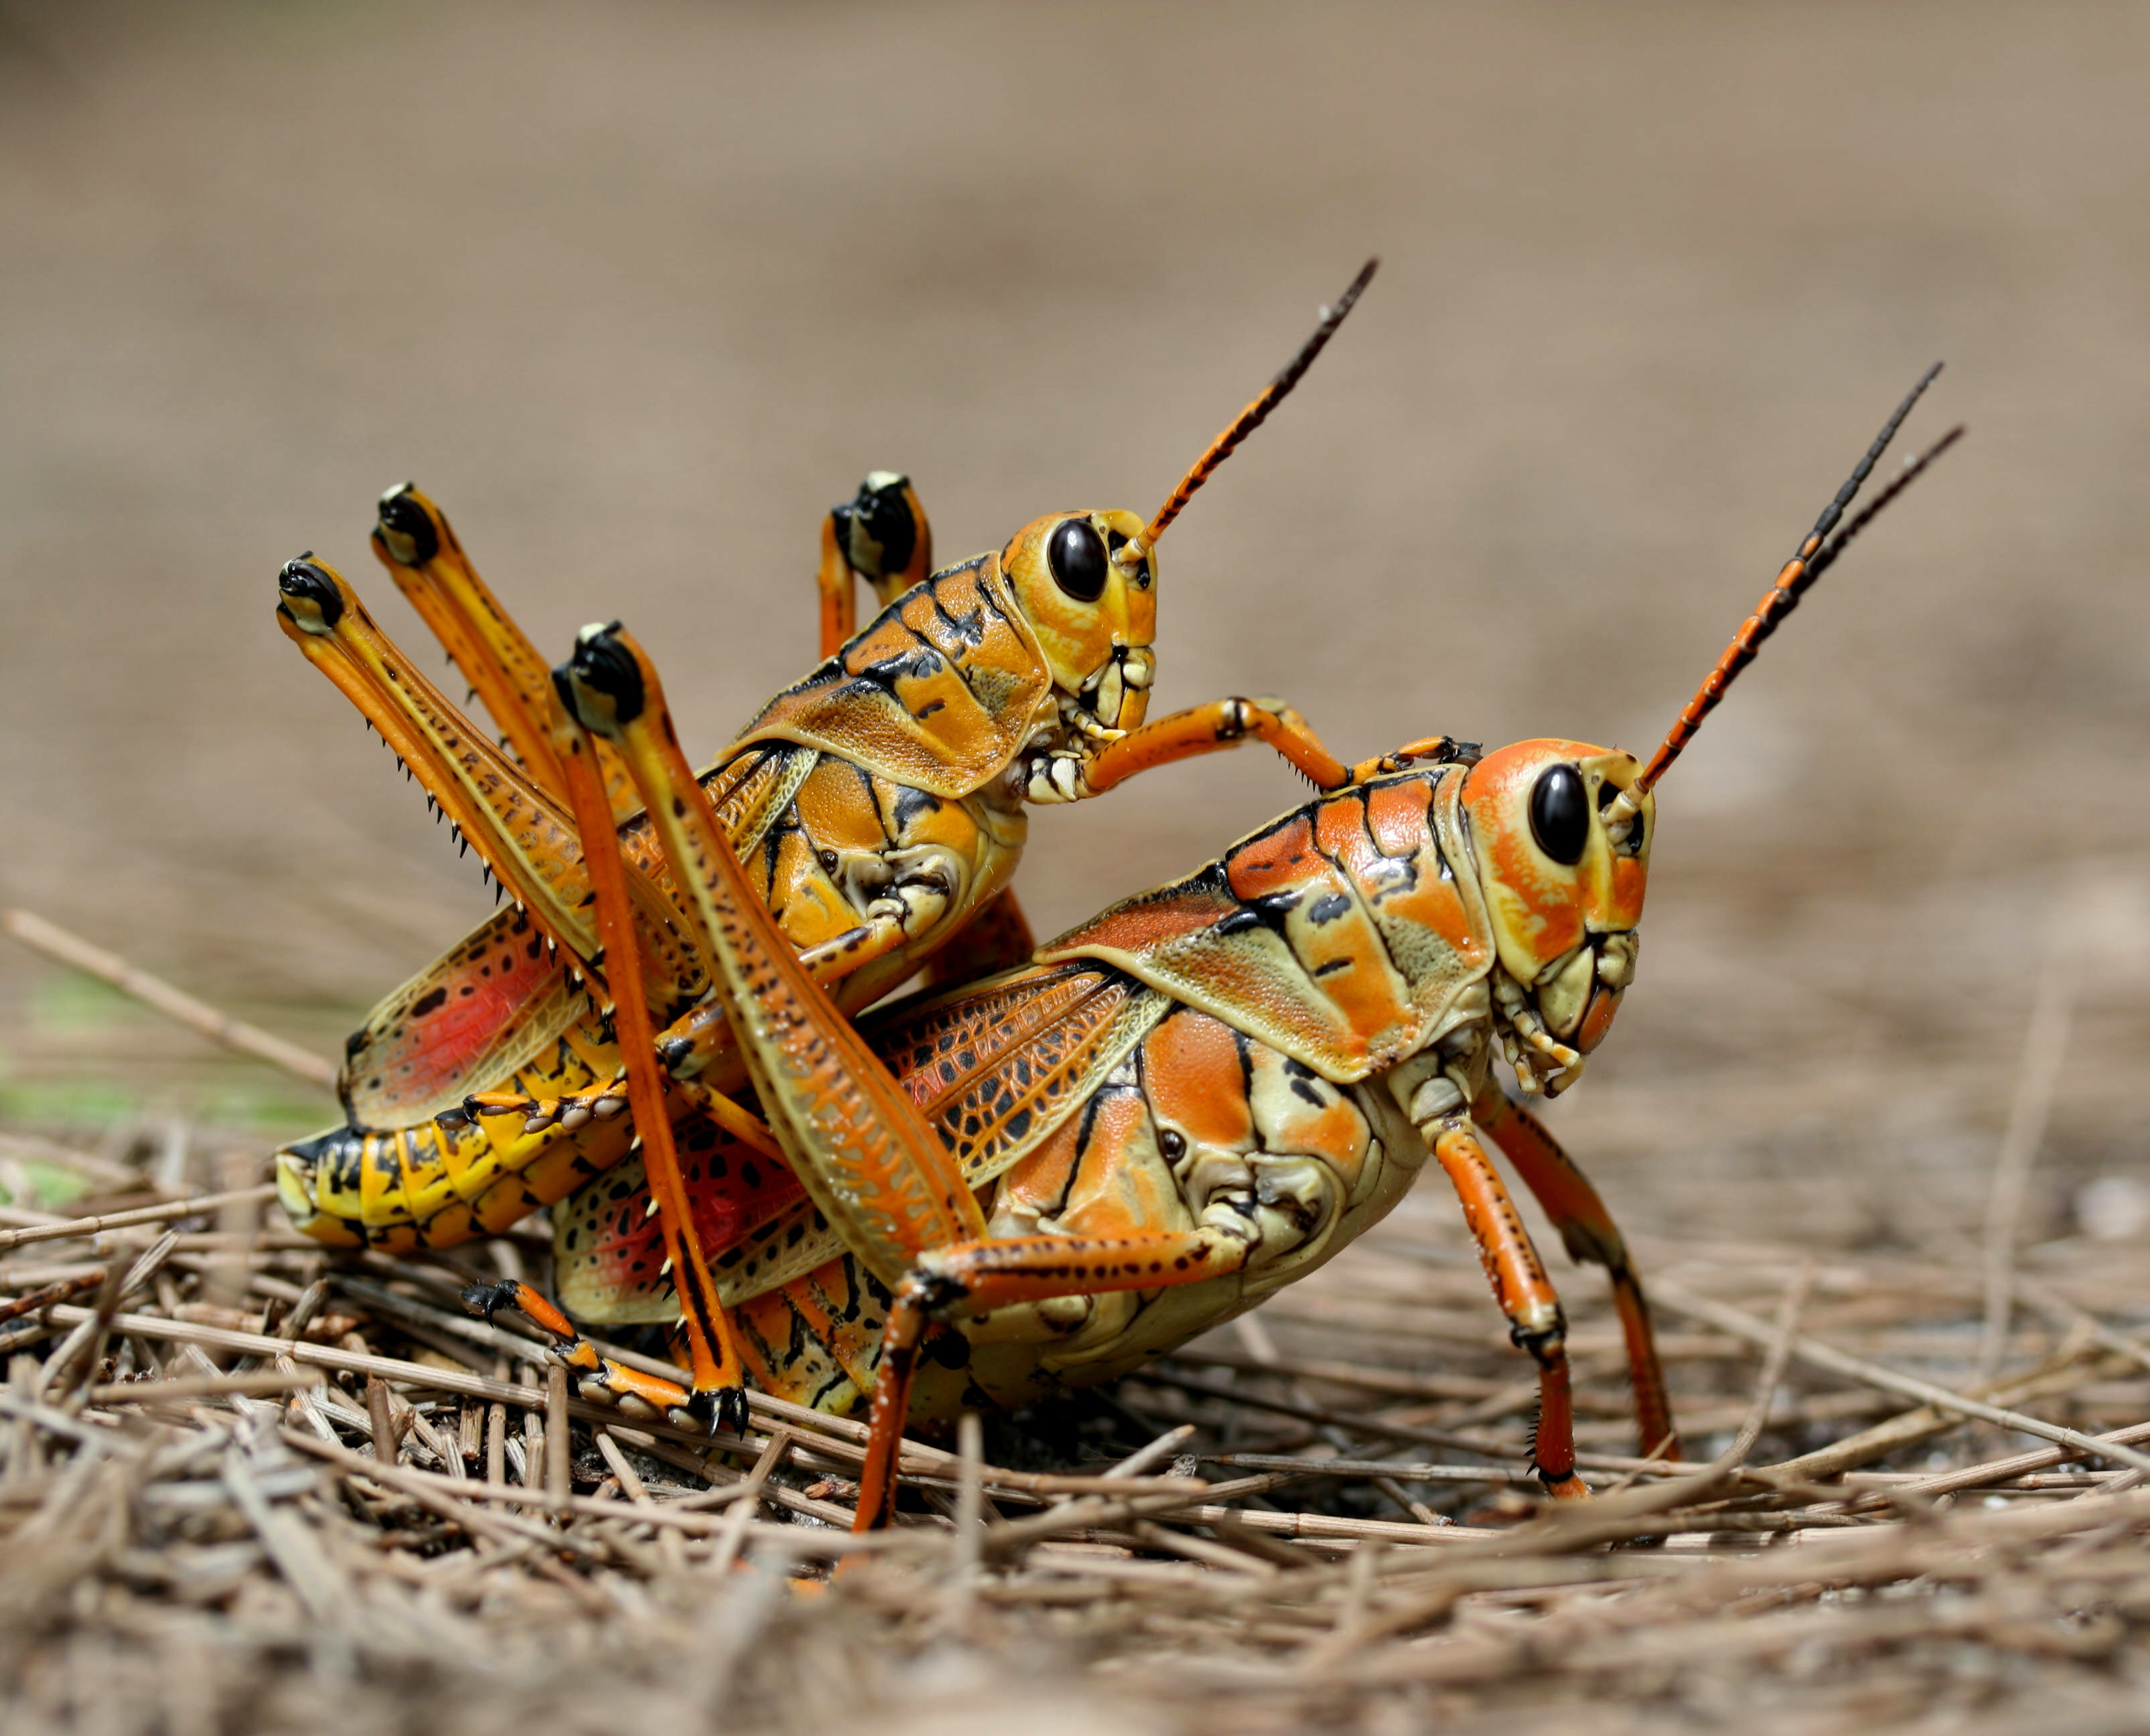 close-up nature bugs grasshopper HD Wallpaper